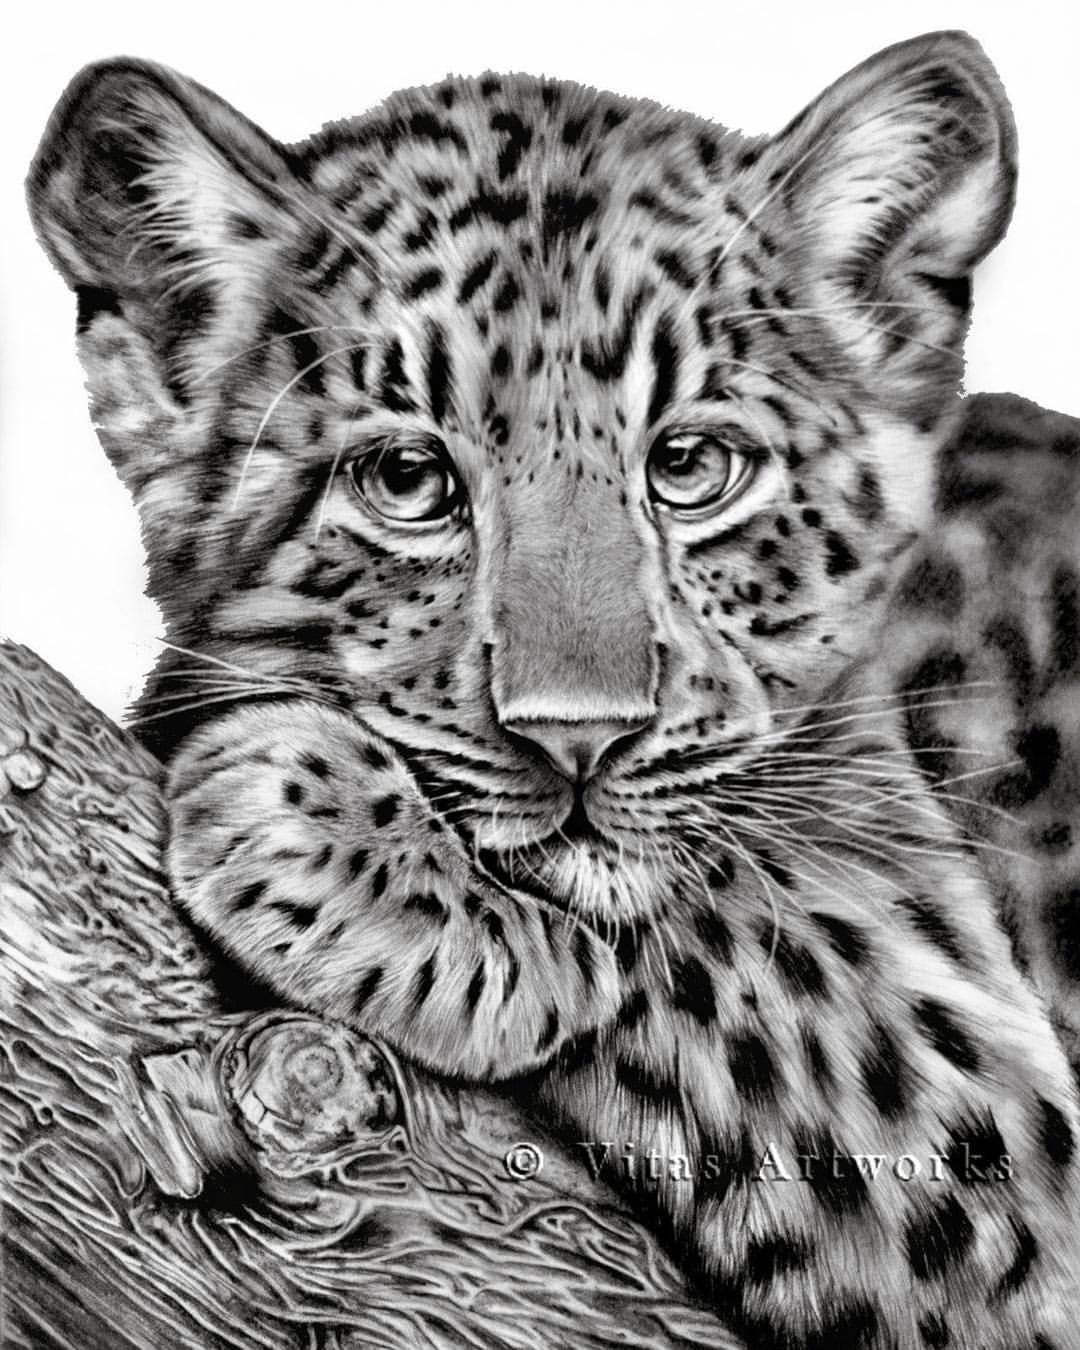 babyleopard bleistift graphite a3 from 2013 leopard leoparddrawing malen zeichnen. Black Bedroom Furniture Sets. Home Design Ideas